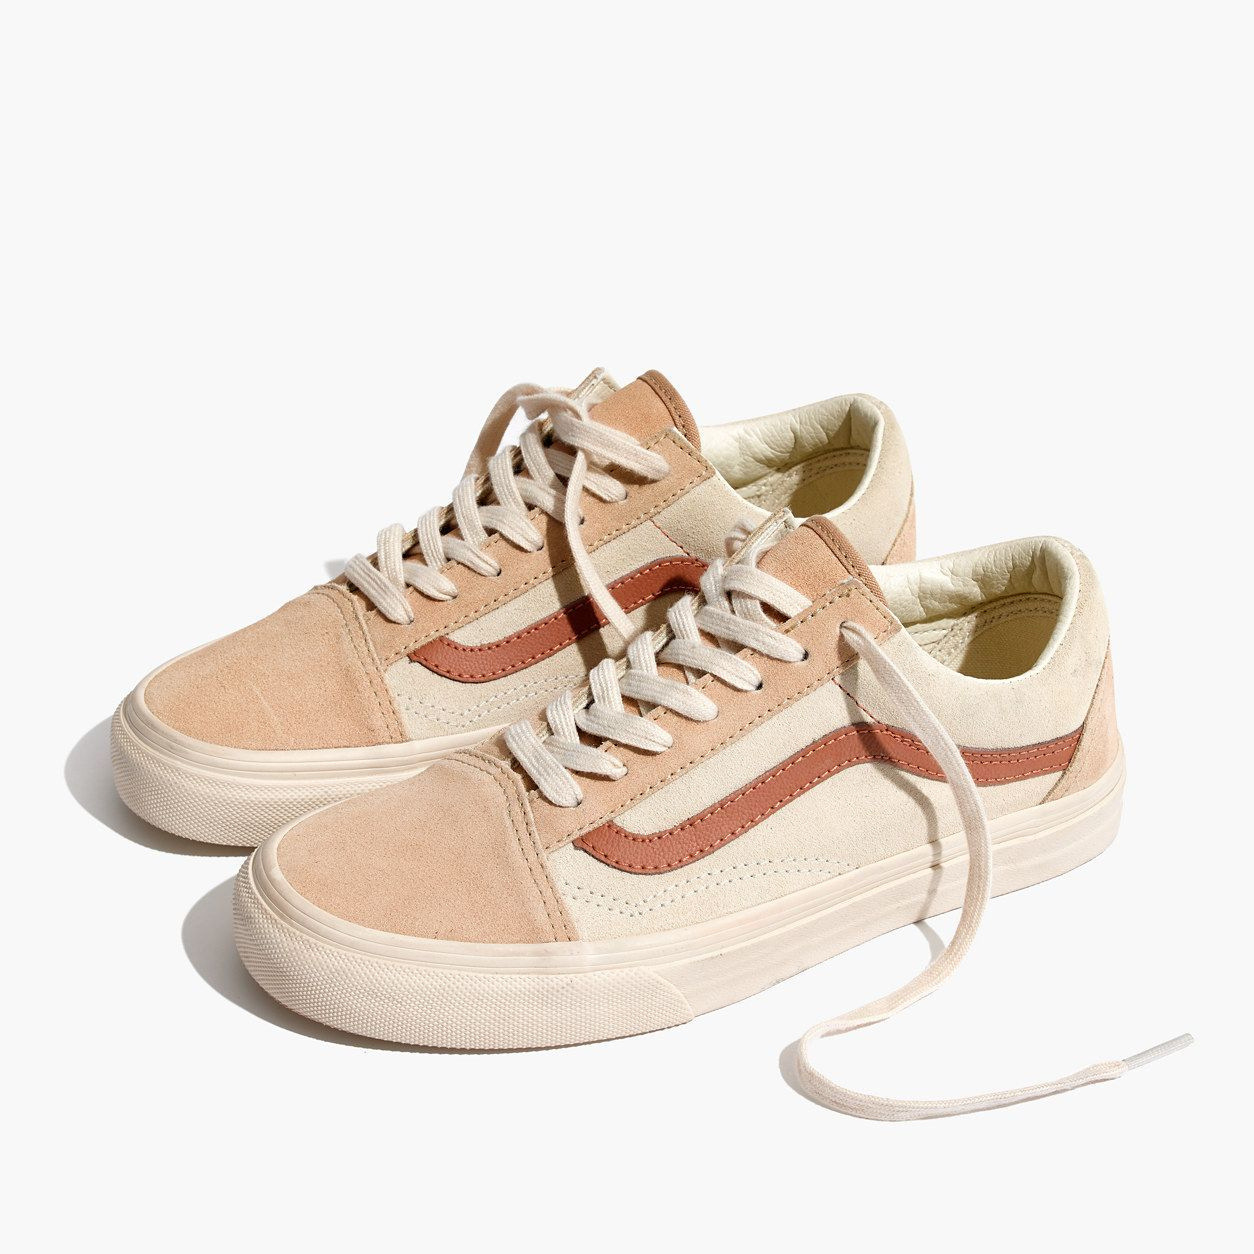 97be14e2fb Madewell X Vans Unisex Old Skool Lace-Up Sneakers In Camel Colorblock